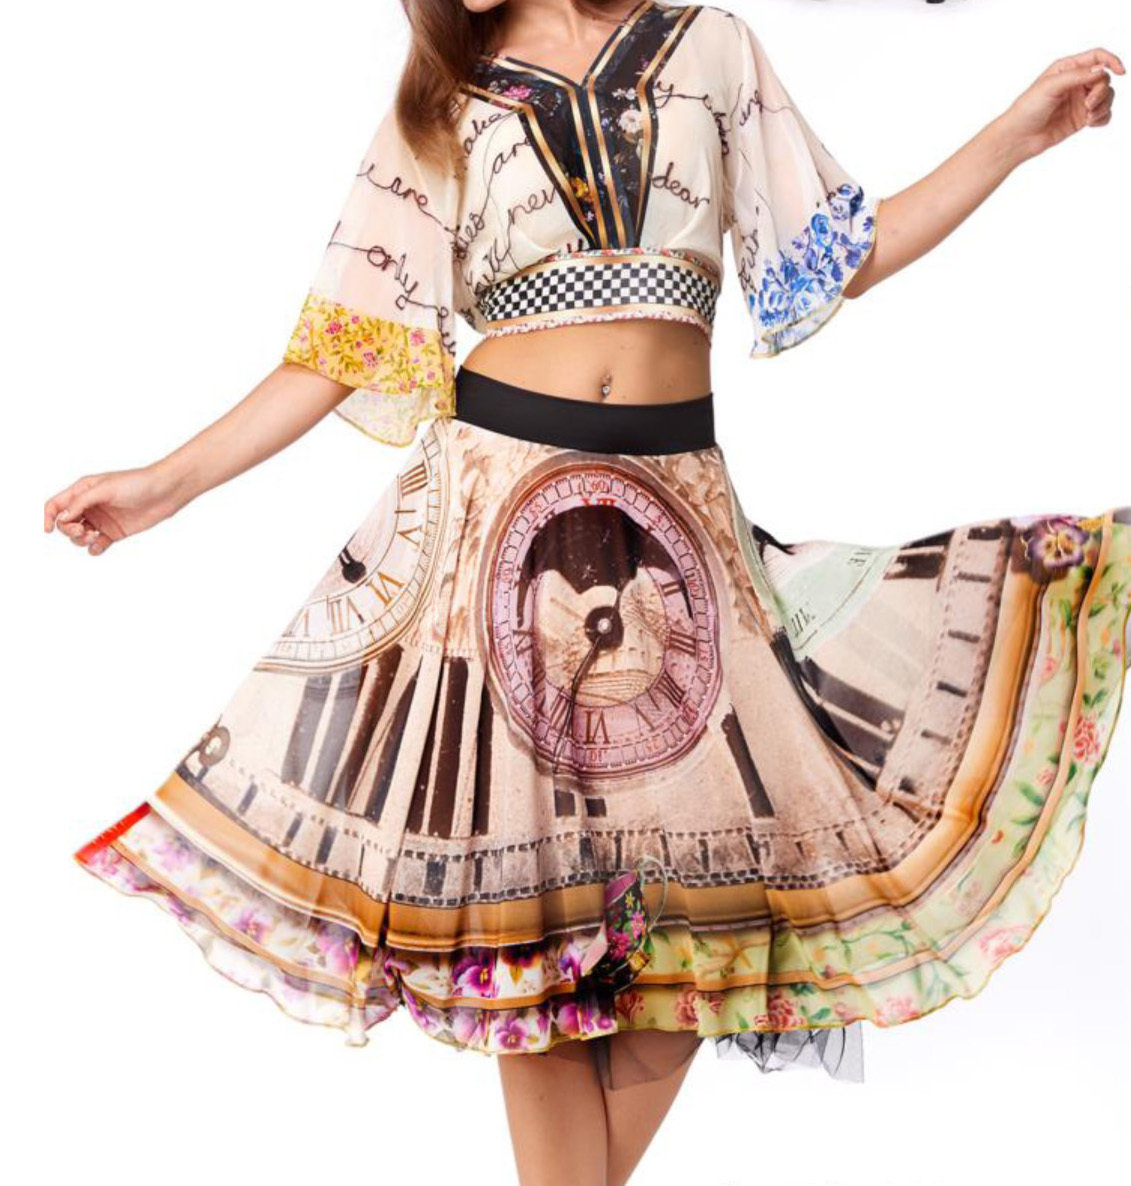 IPNG: Blooming Patchwork Inscripted Illusion Kimono Chiffon Crop Top (1 Left, Ship Immed!)